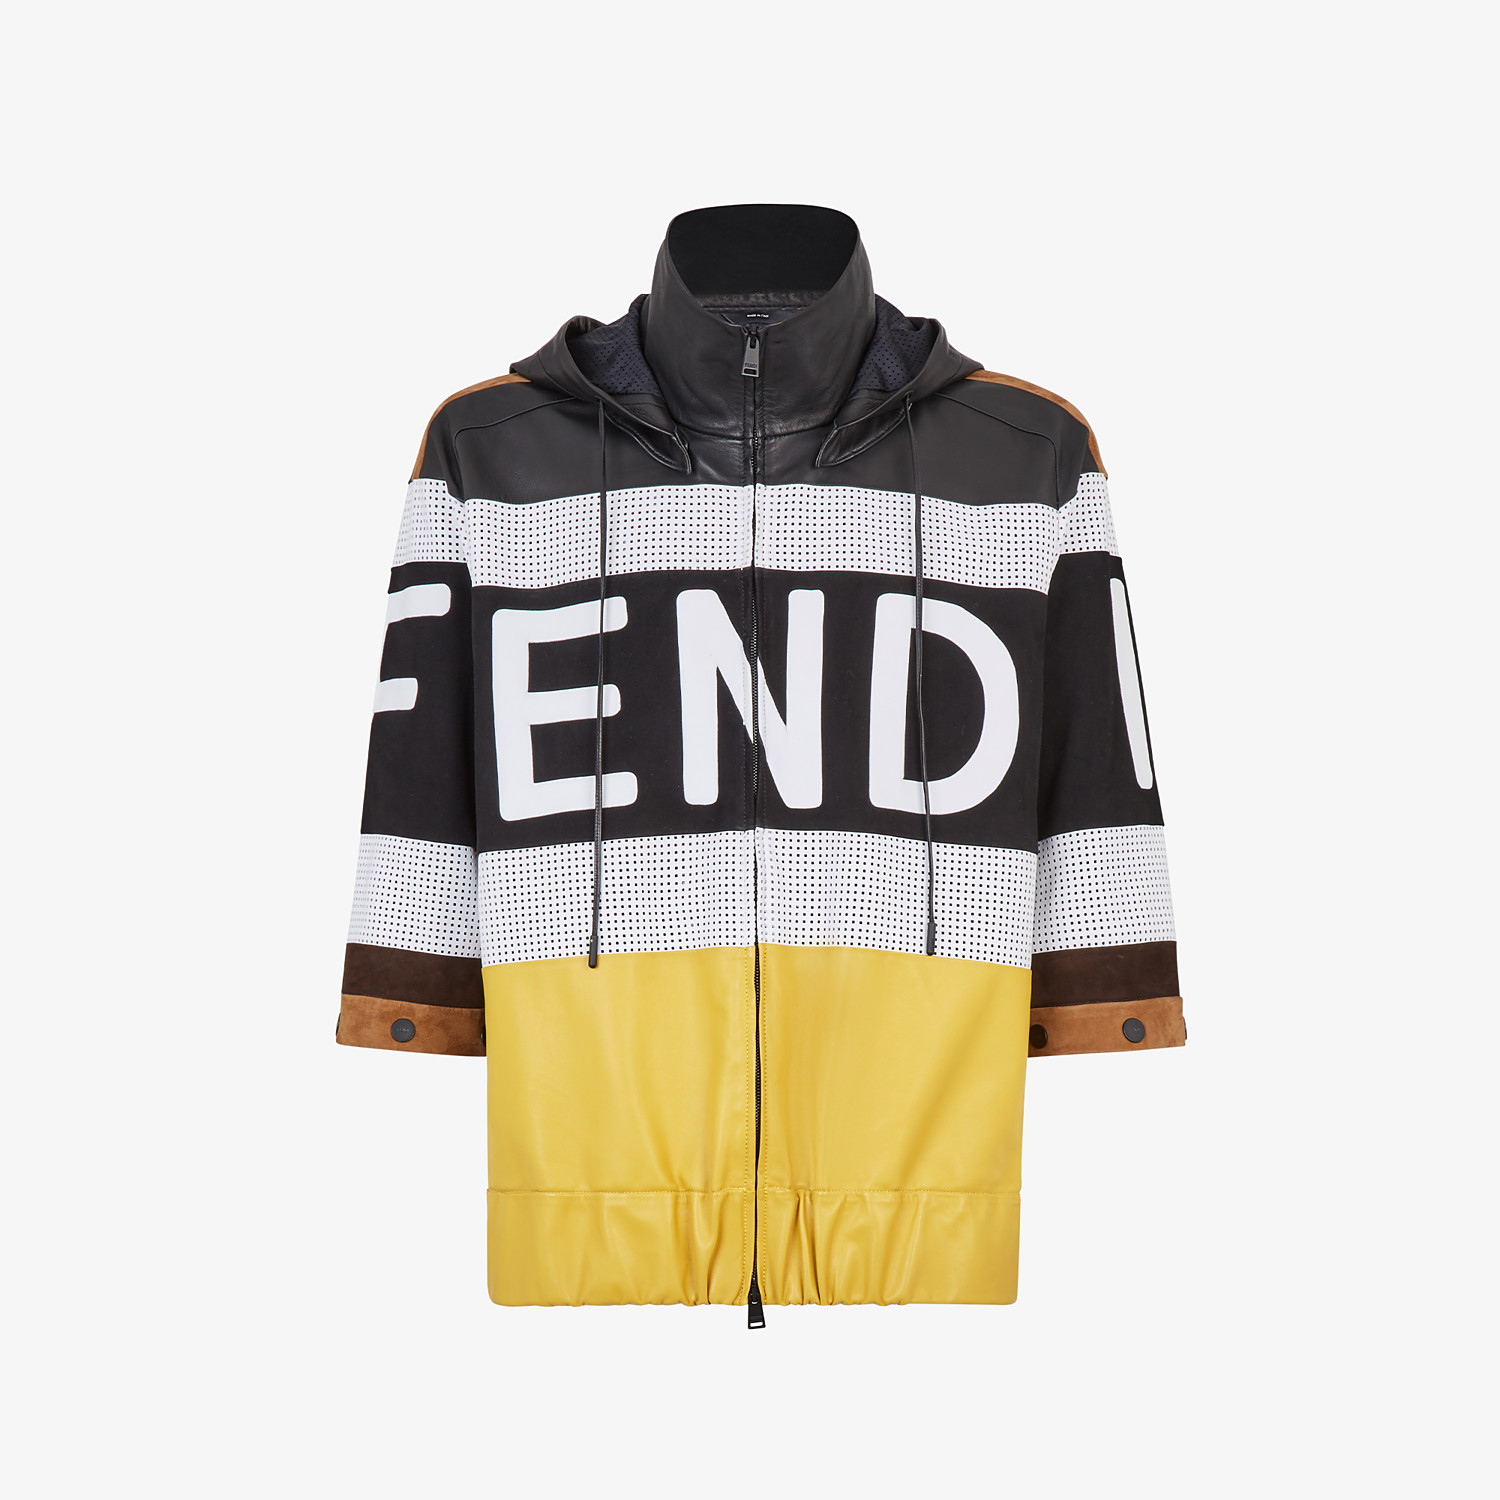 FENDI JACKET - Multicolour leather and suede jacket - view 4 detail